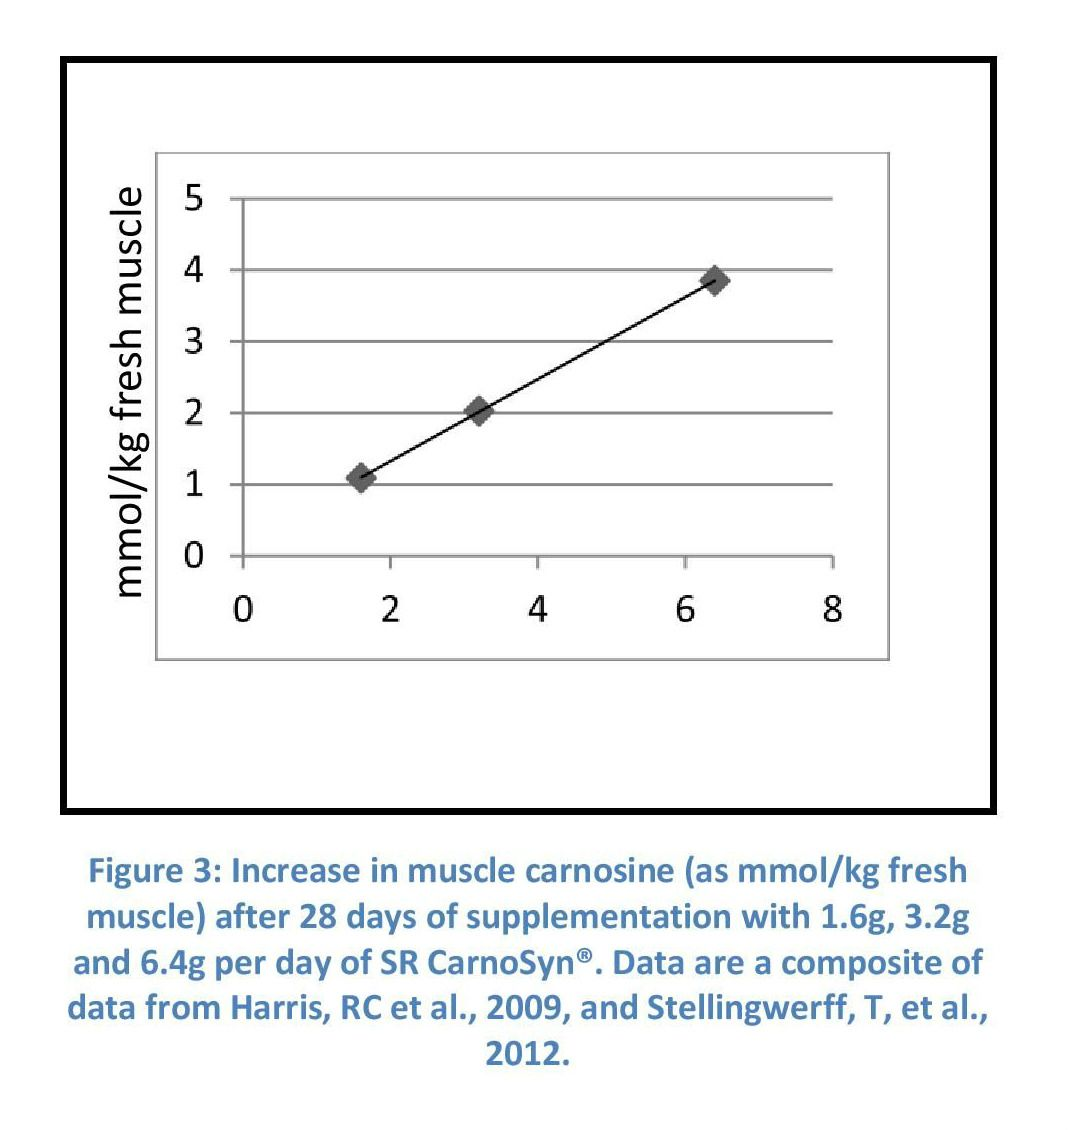 Muscle Carnosine Elevation and its Impact on Exercise